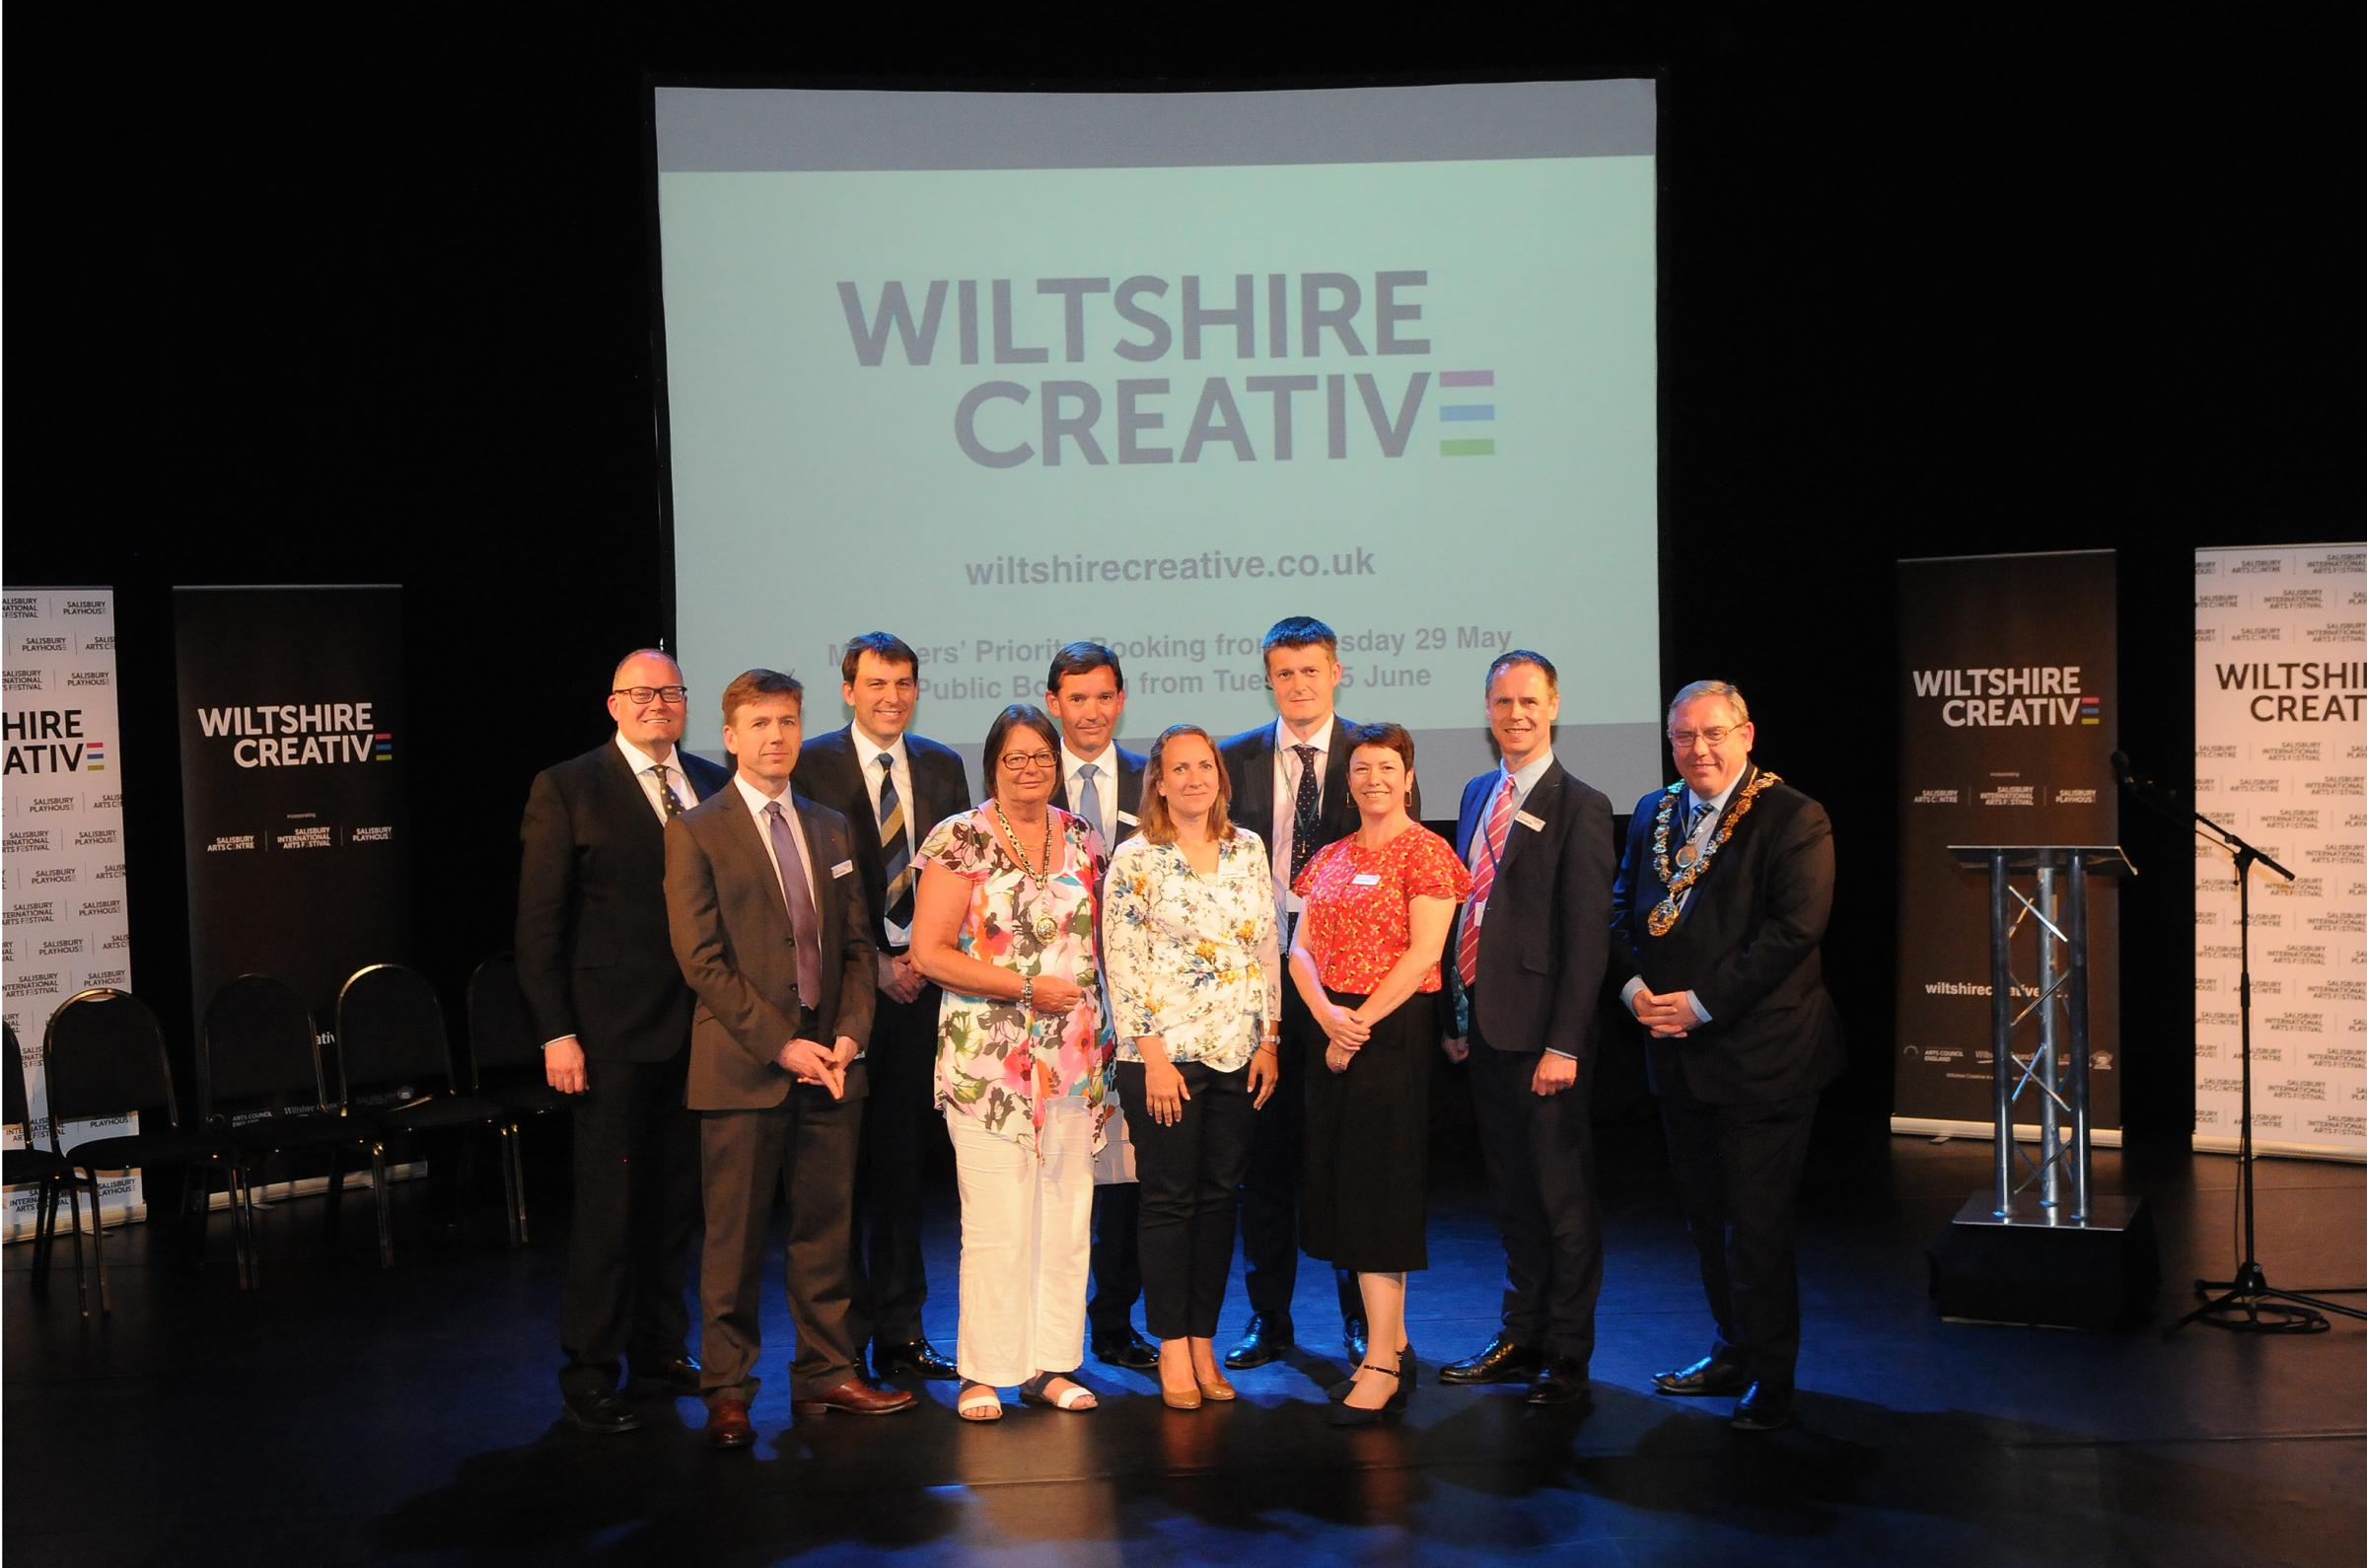 The Wiltshire Creative launch at Salisbury Playhouse DC8653P21 Picture by Tom Gregory.